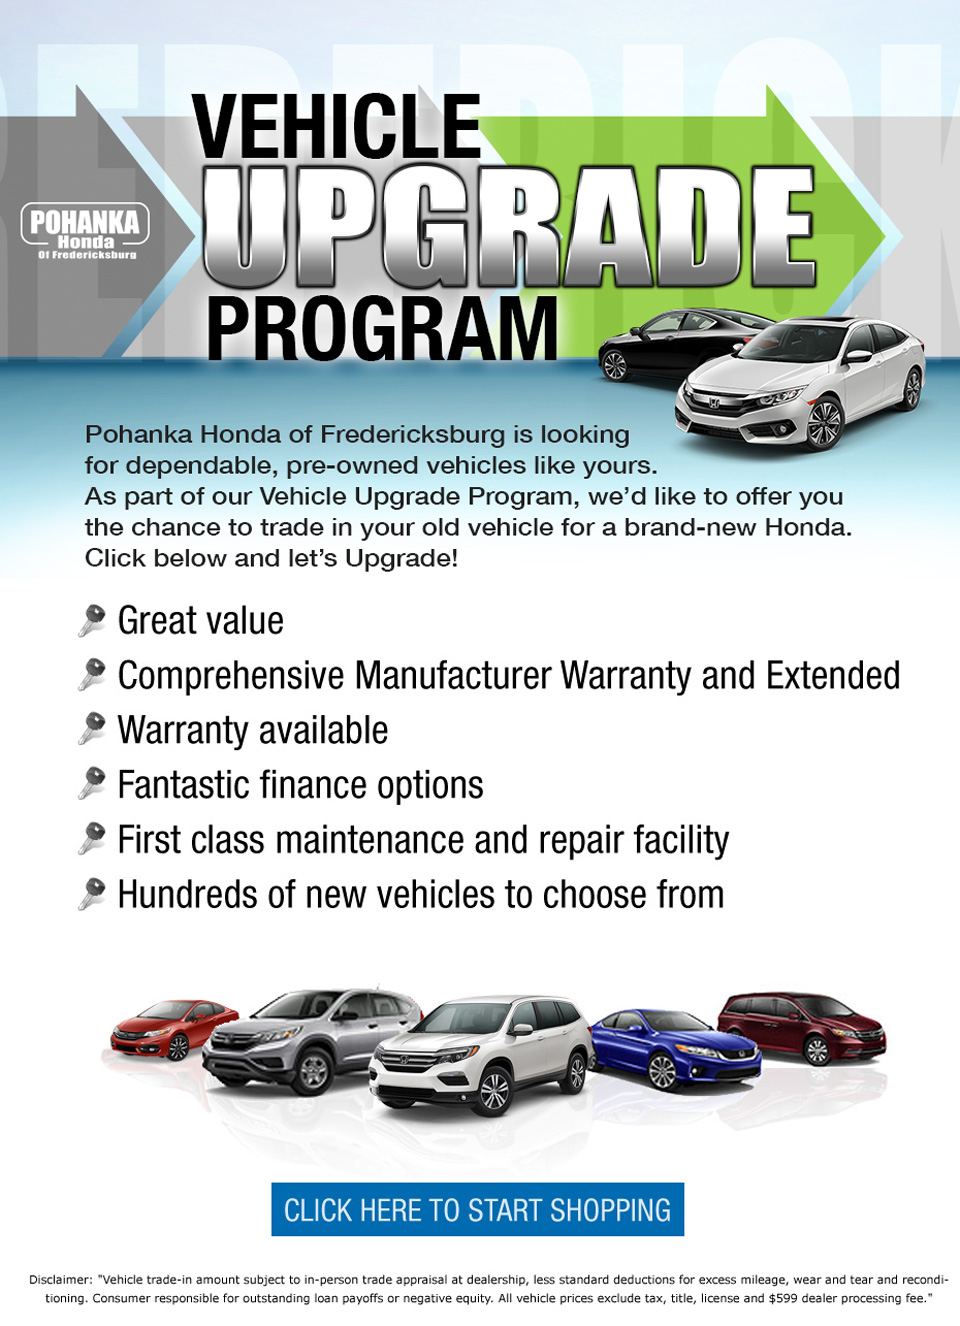 Pohanka Vehicle Upgrade Program - Pohanka Honda of Fredericksburg